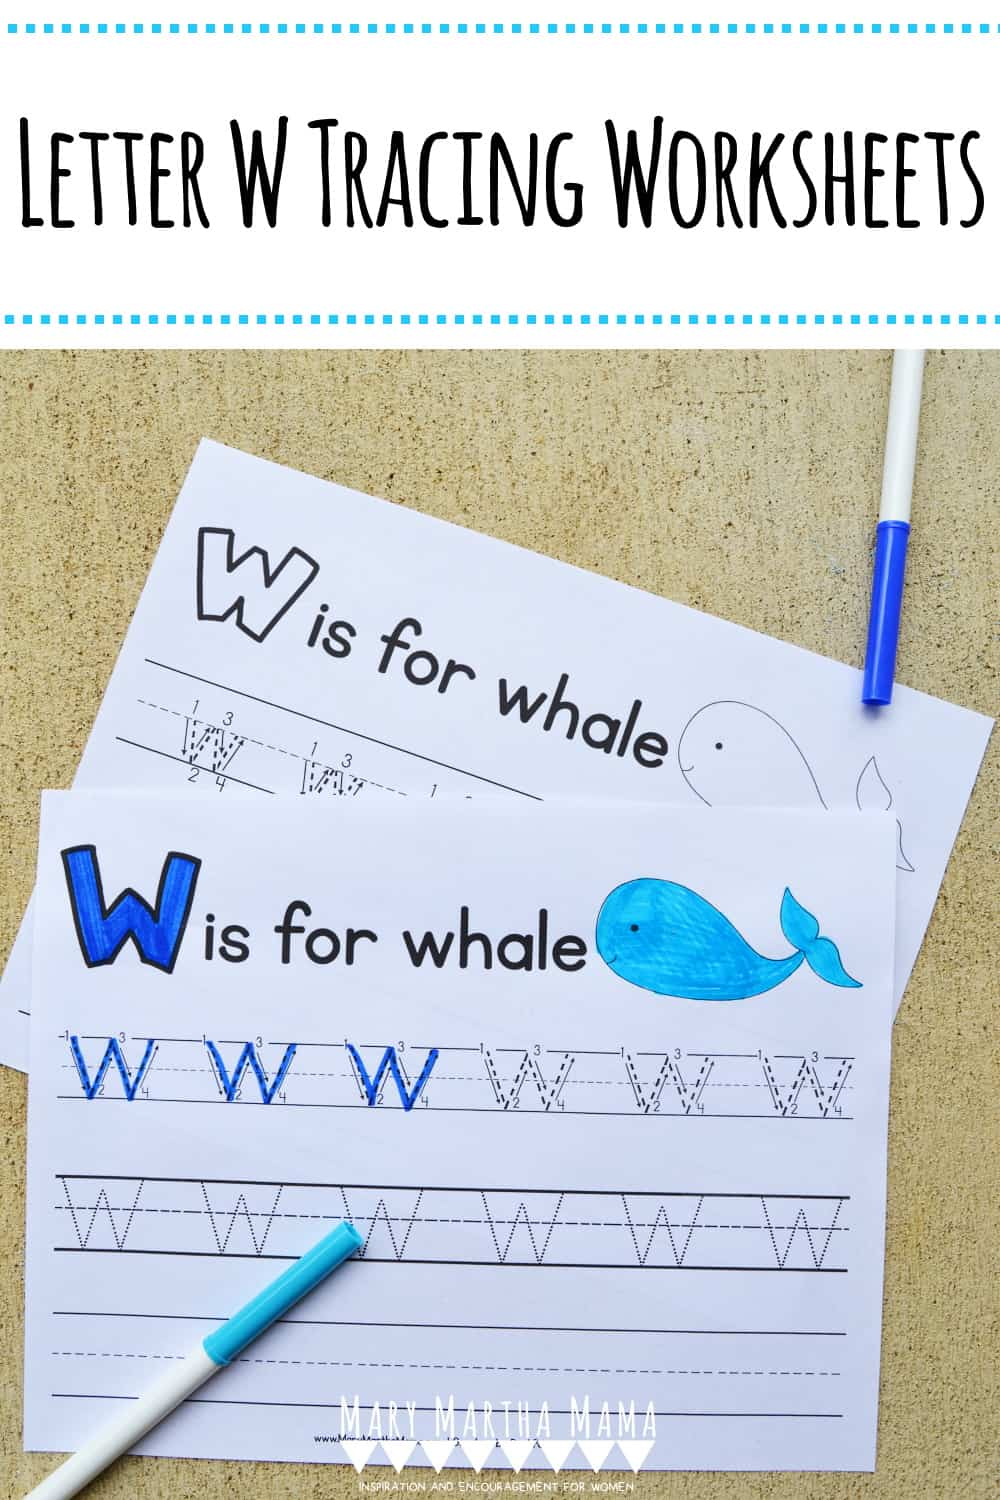 Use these free printable letter W tracing worksheets to help your kiddo learn proper letter formation for upper and lower case W.